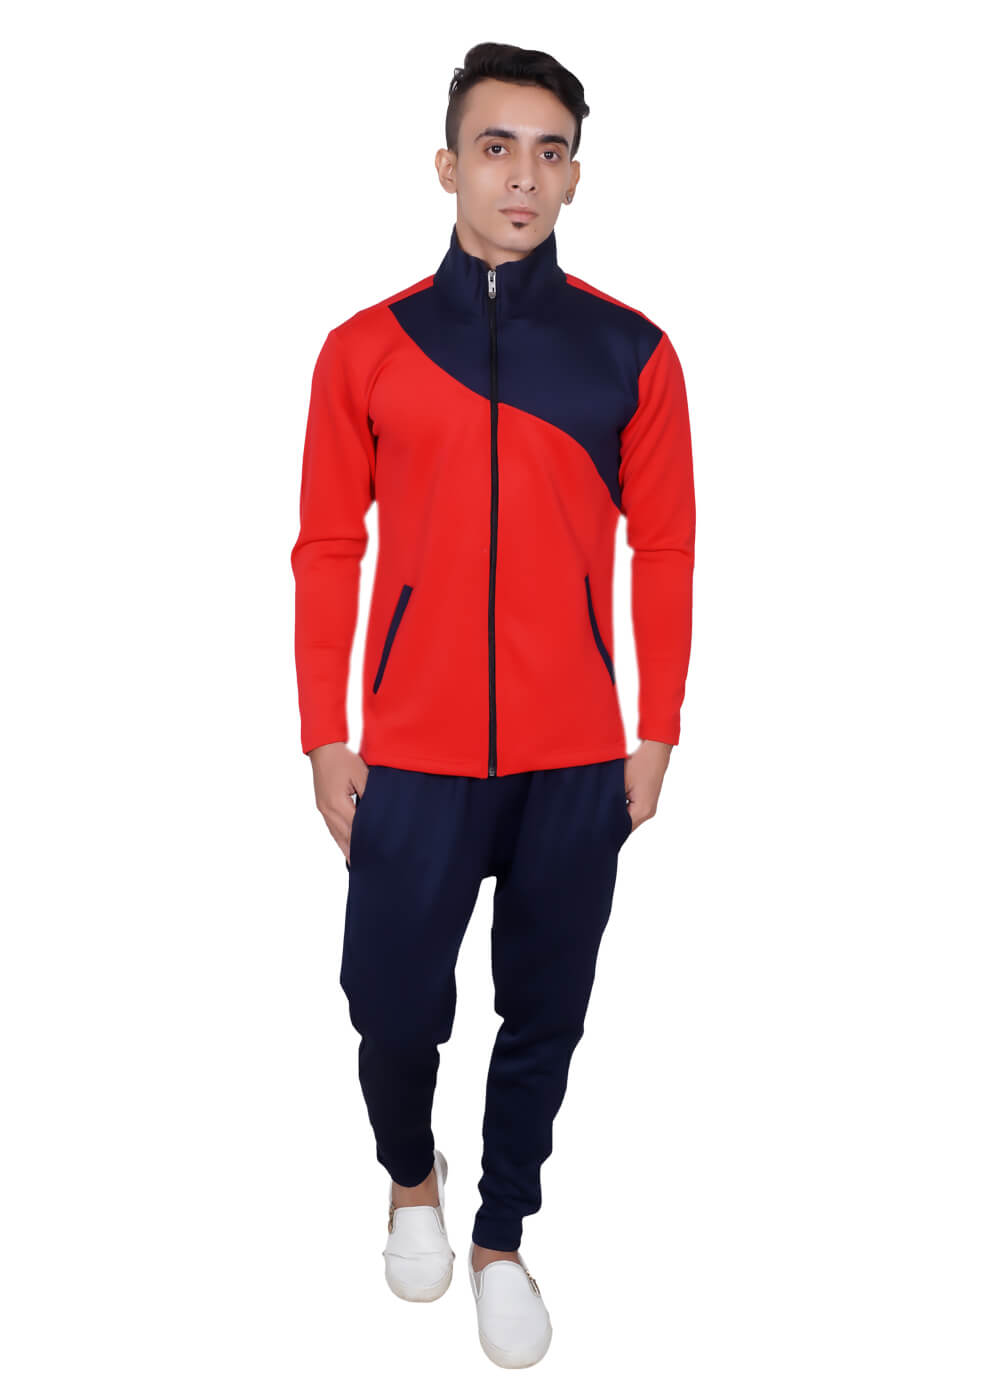 Cheap Tracksuits Manufacturers in Allahabad